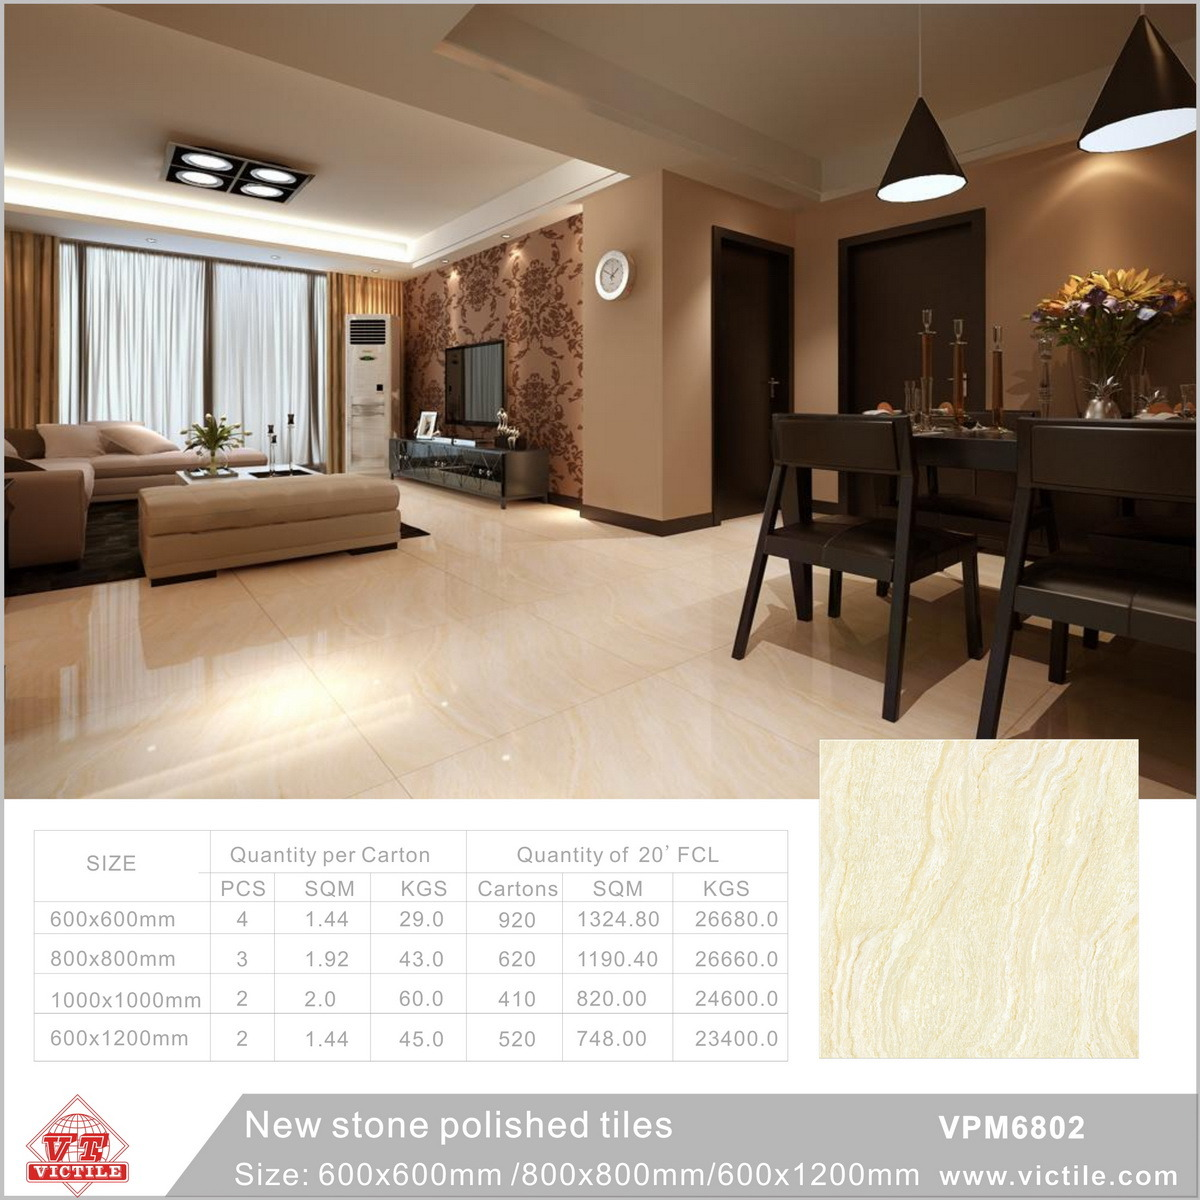 China building material porcelain polished ceramic light yellow building material porcelain polished ceramic light yellow new stone amazon floor tile vpm6802 600x600mm dailygadgetfo Image collections